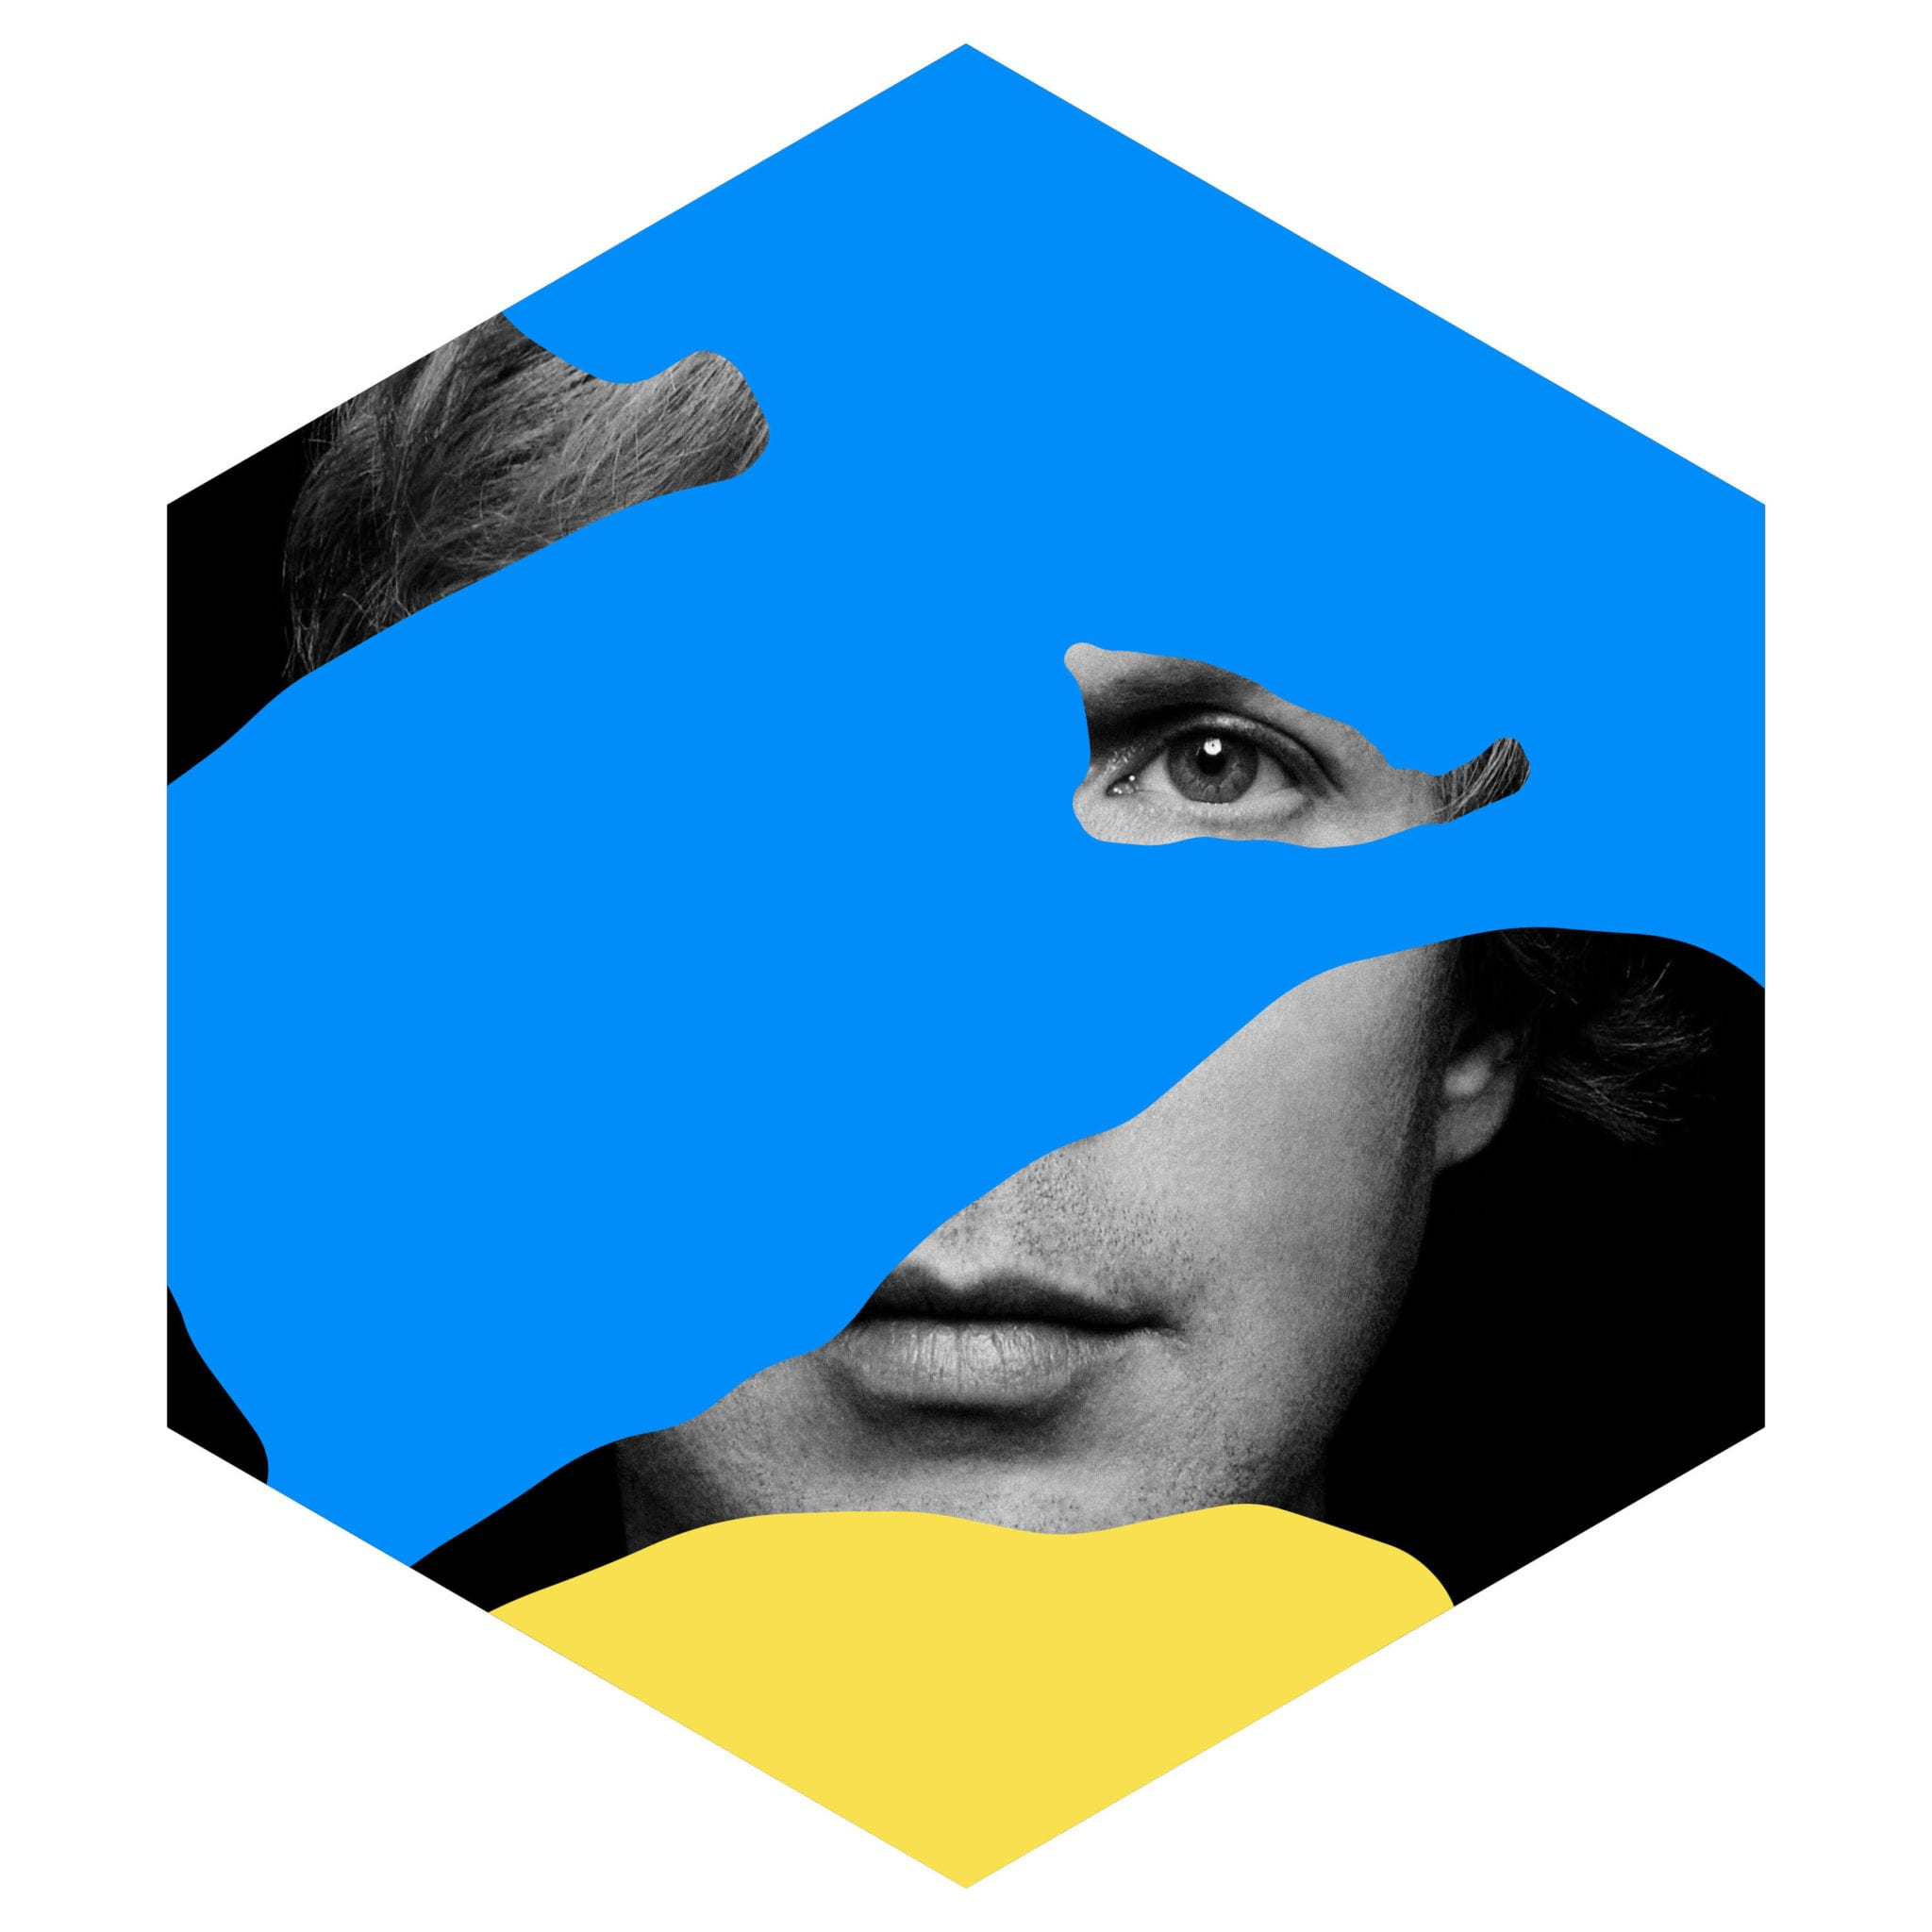 Beck announces new album 'Colors' and shares new track 'Dear Life'